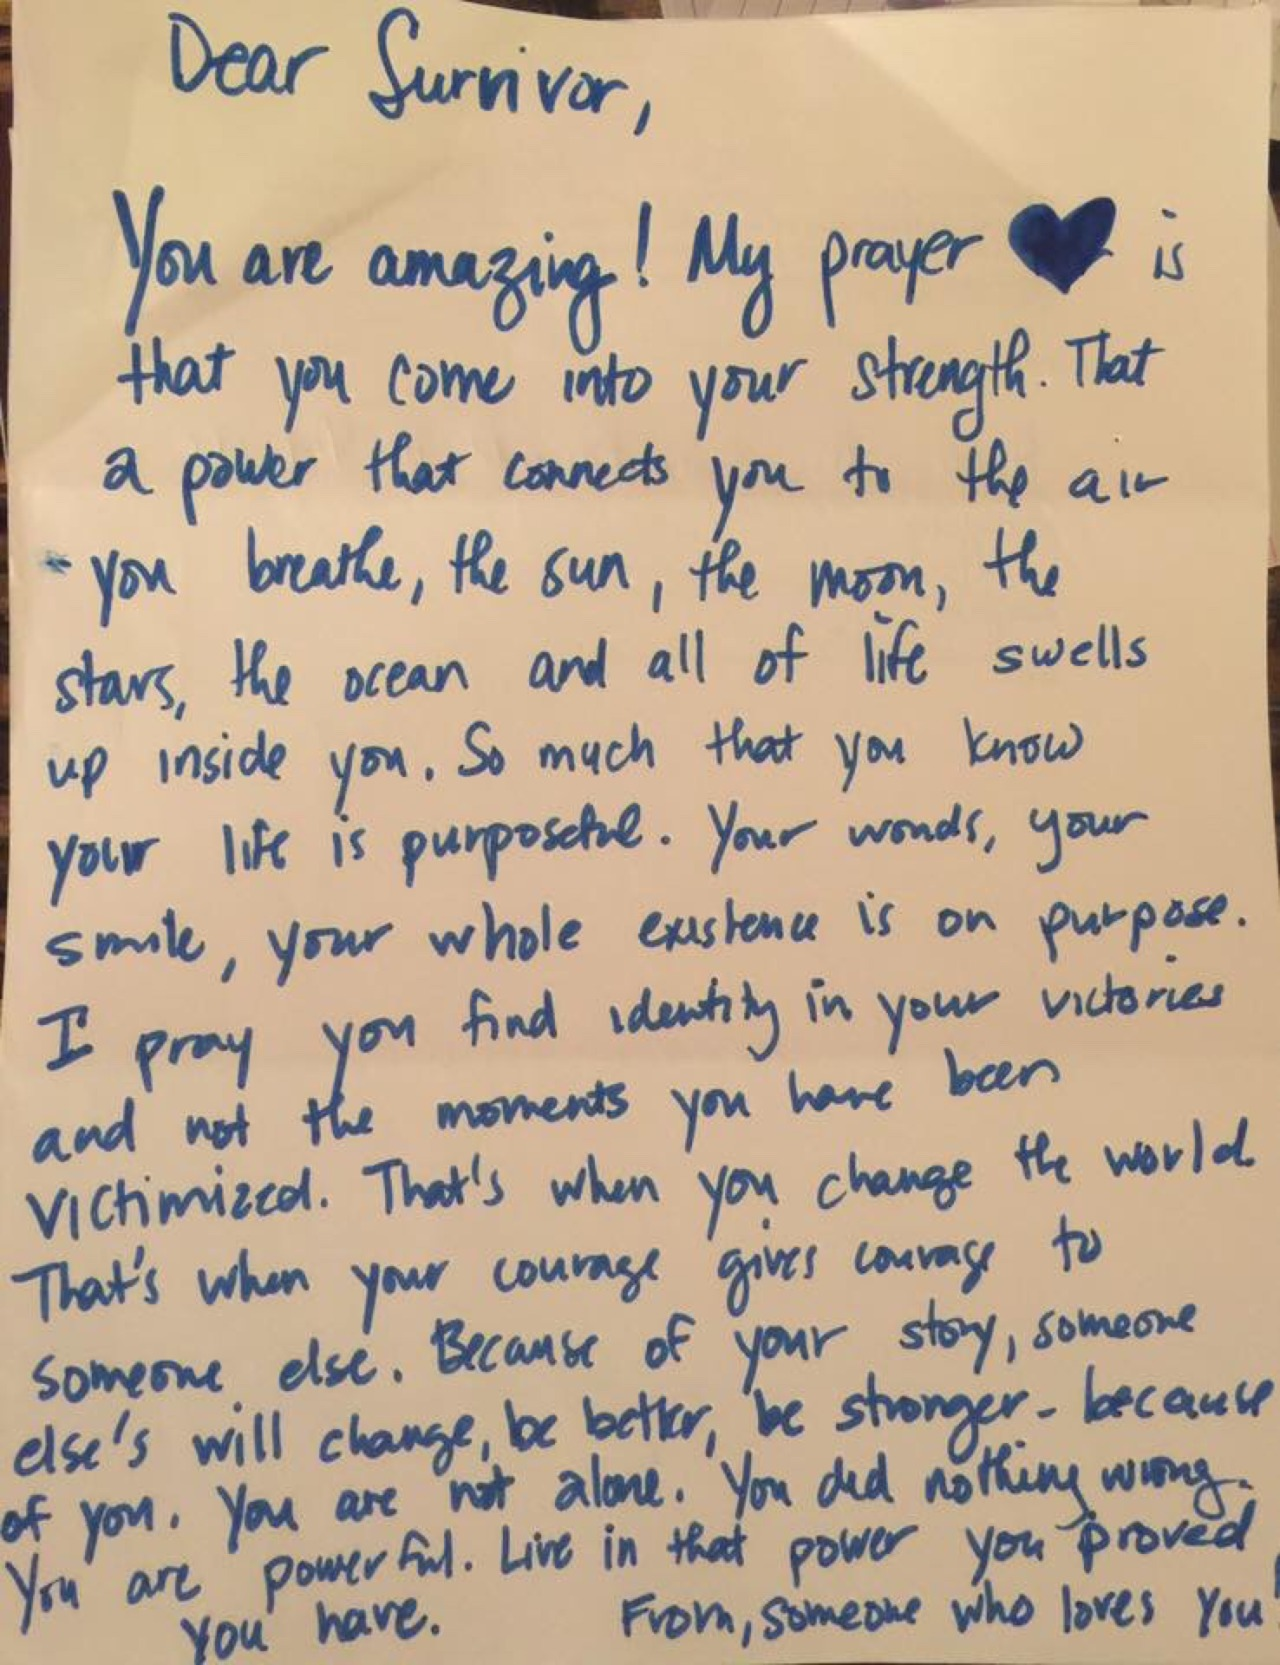 Dear Survivor,  You are amazing! My prayer is that you come into your strength. That a power that connects you to the air you breathe the sun, the moon, the stars, the ocean and all of life swells up inside you. So much that you know your life is purposeful. Your words, your smile, your whole existence is on purpose. I pray you find identity in your victories and not the moments you have been victimized. That's when you change the world. That's when your courage gives courage to someone else. Because of your story, someone else's will change, be better, be stronger– because of you. You are not alone. You did nothing wrong. You are powerful. Live in that power you proved you have.  From,   Someone who loves you